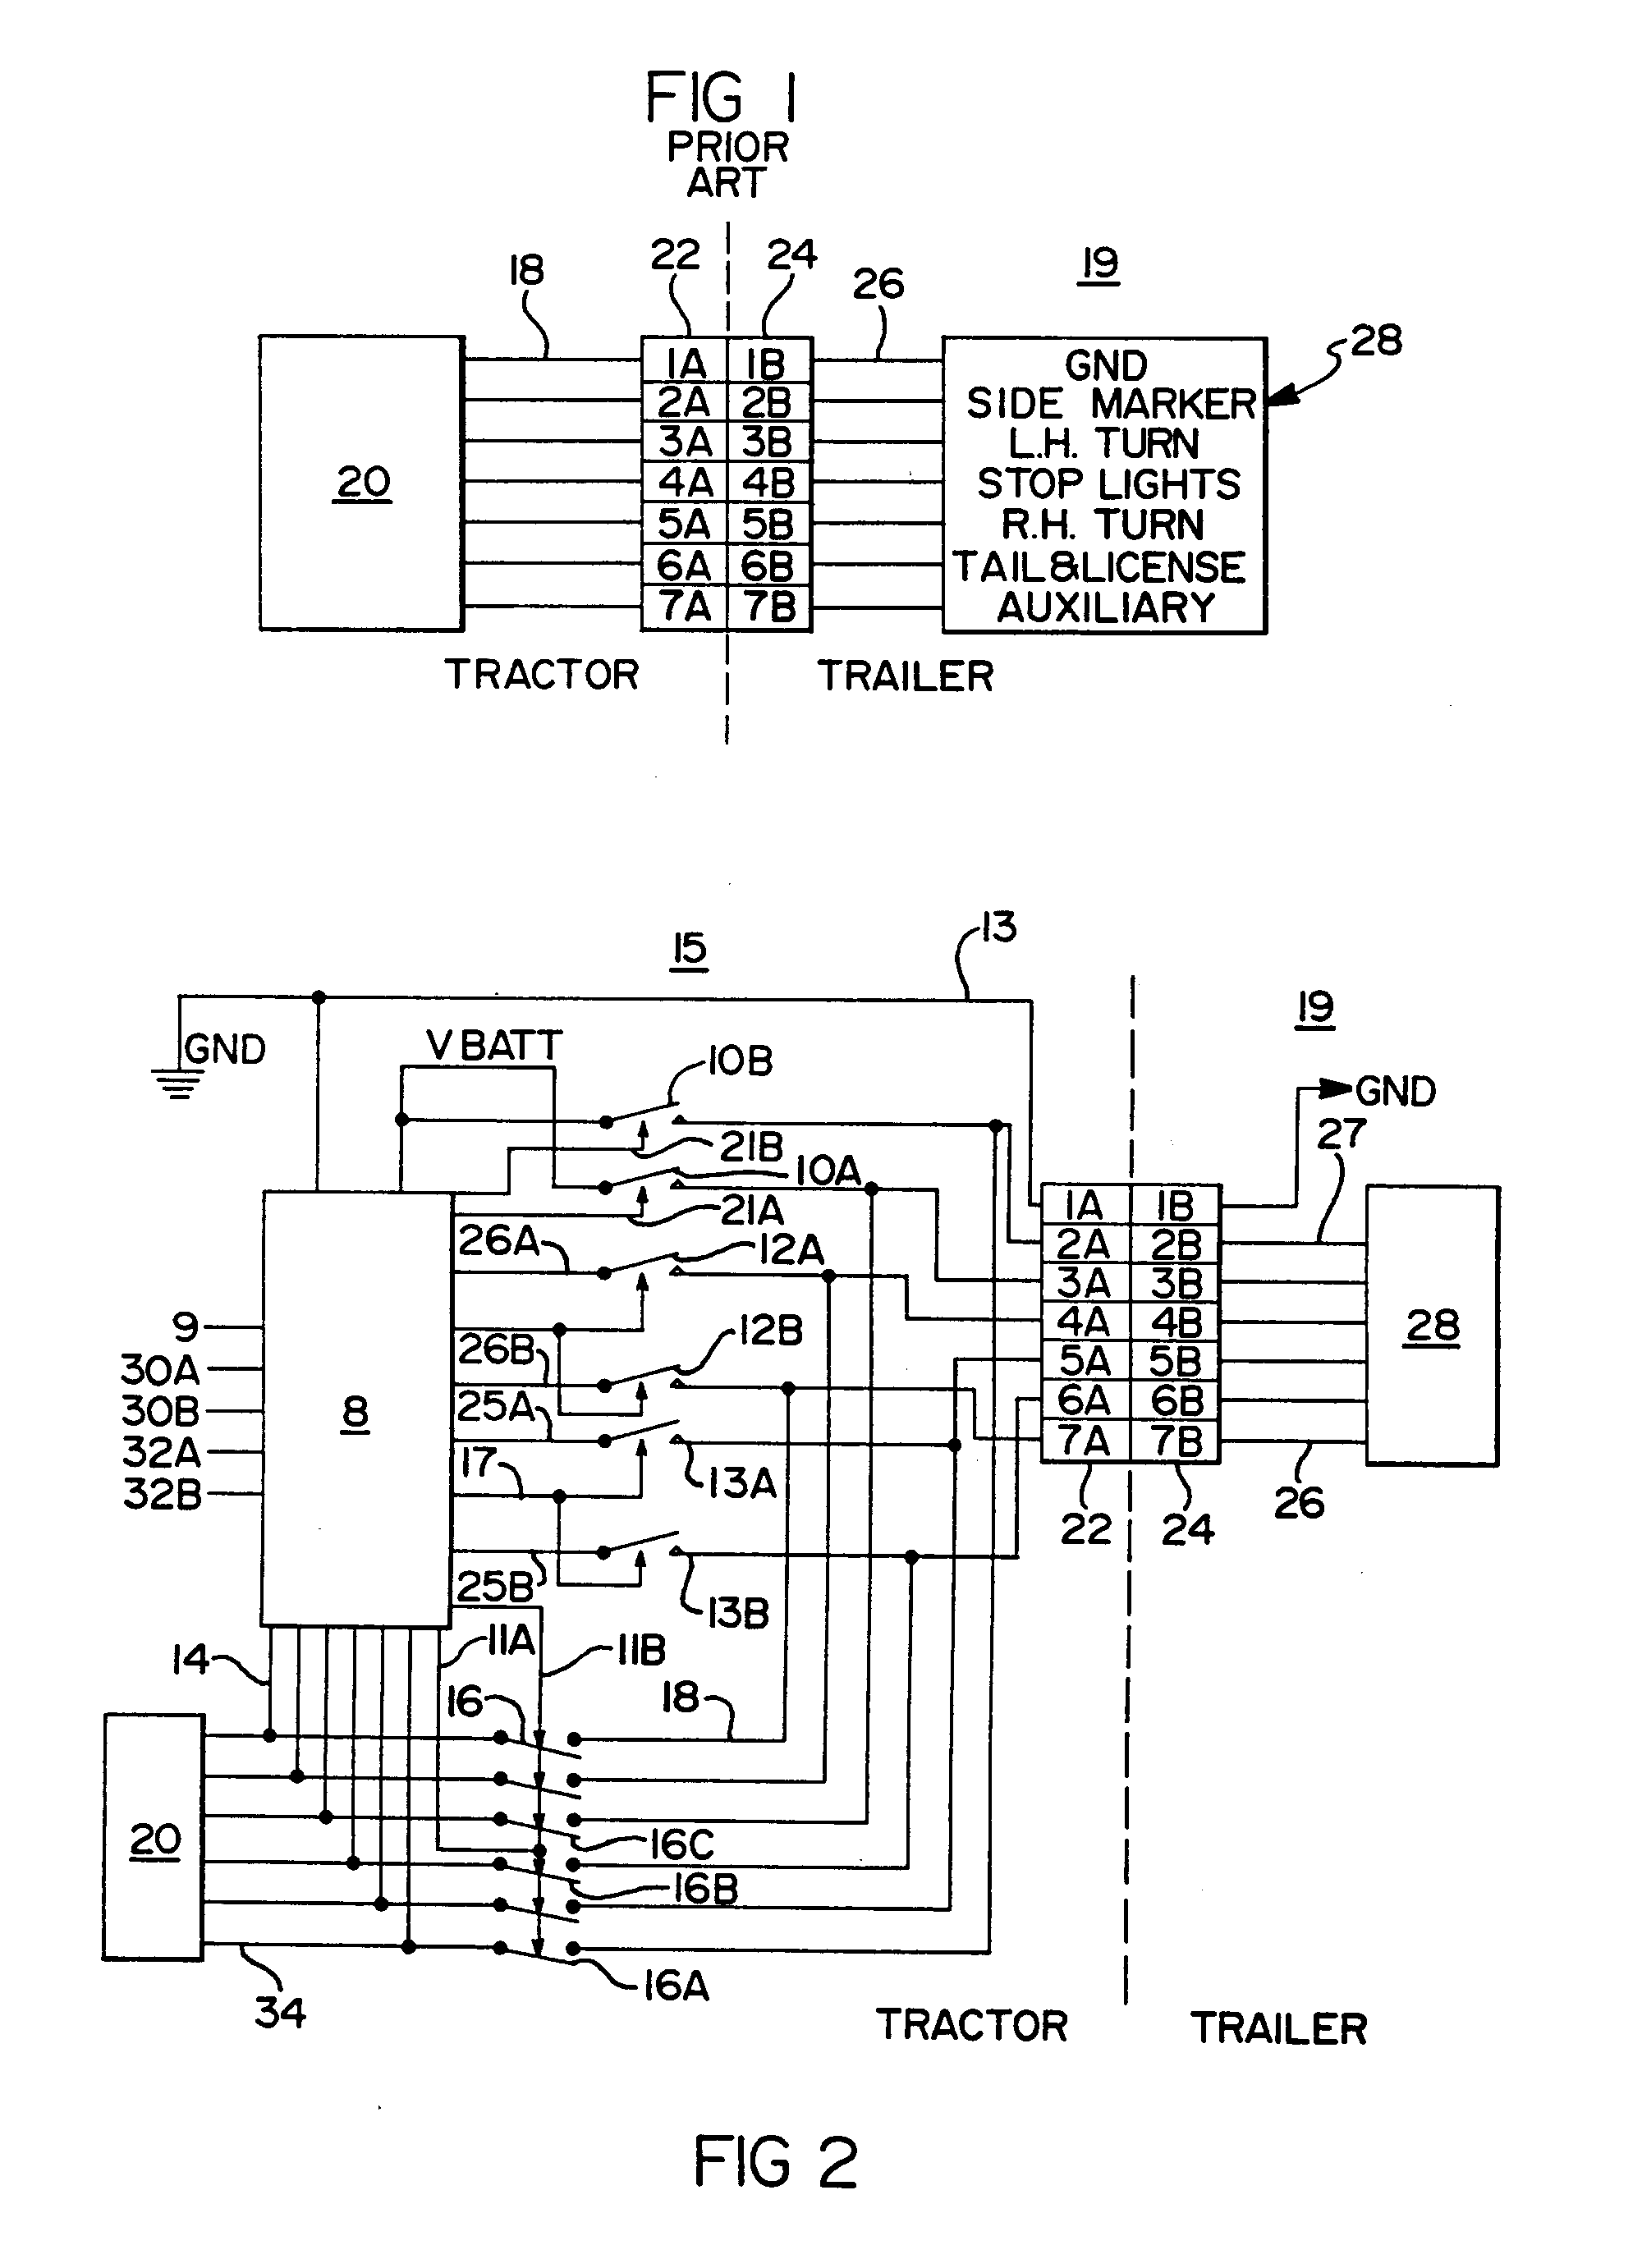 bendix abs wiring diagram dw 0747  typical tractor abs wiring diagram  dw 0747  typical tractor abs wiring diagram